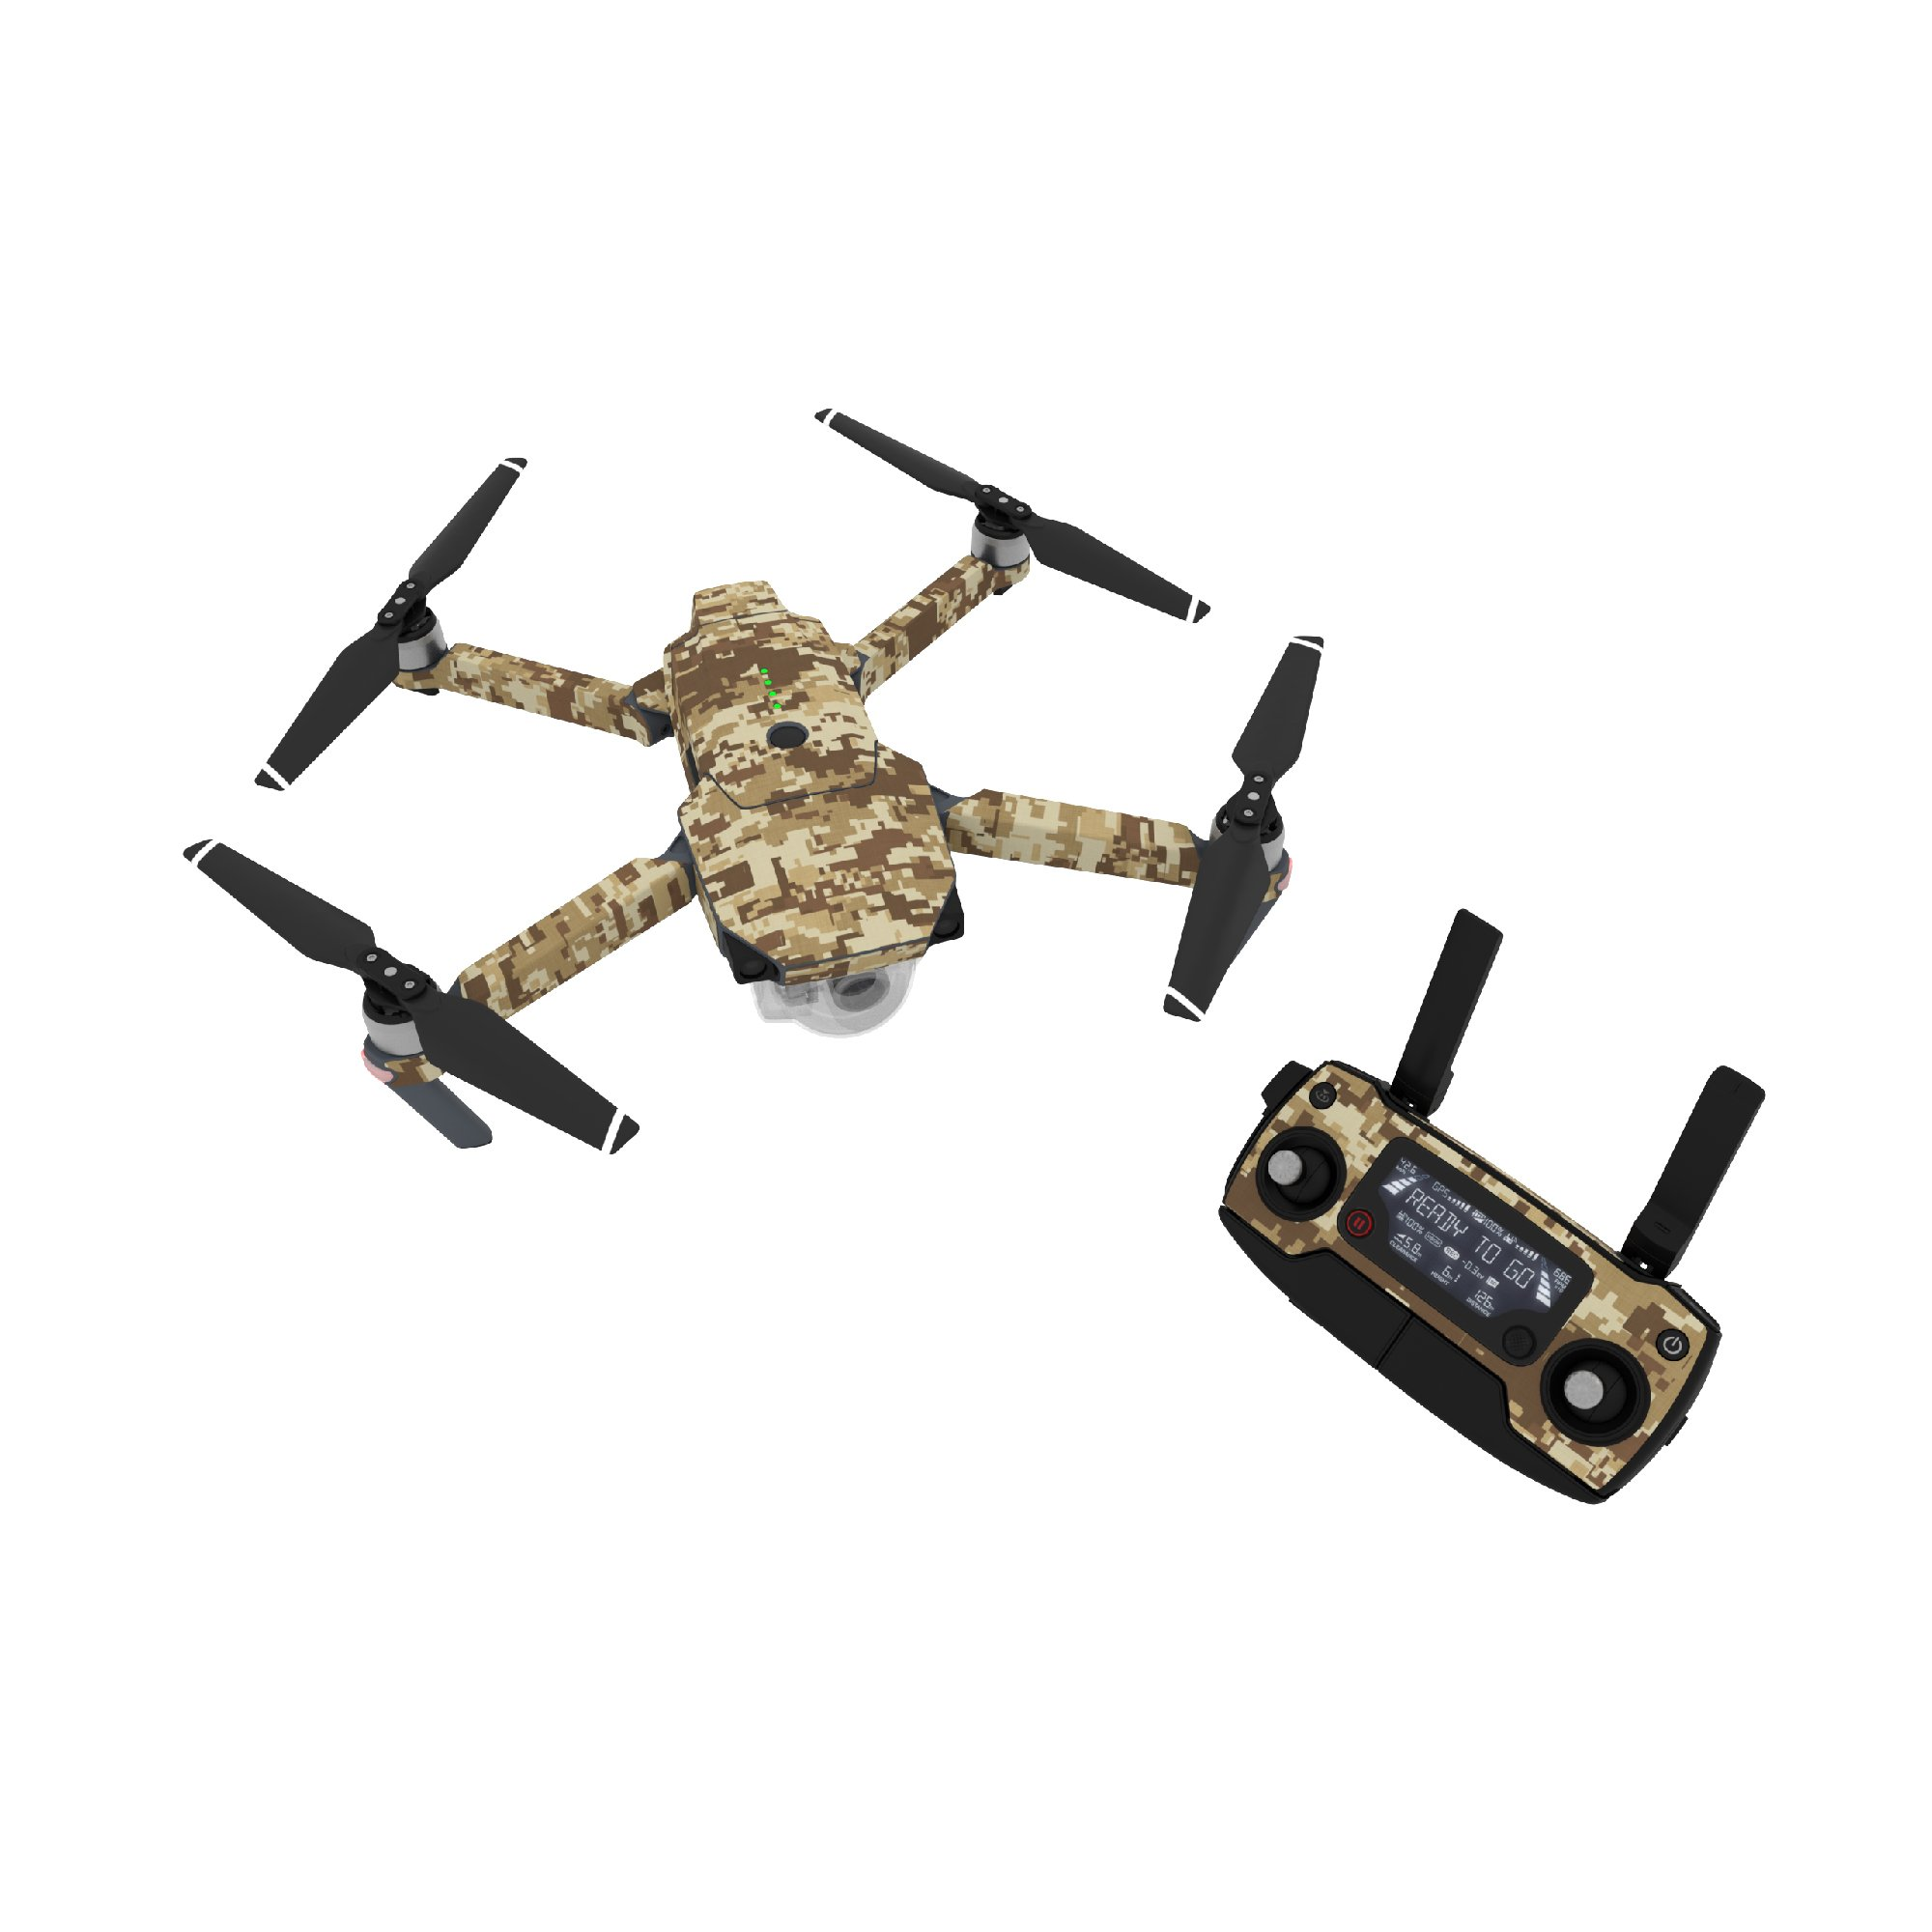 c64b74e540e Get Quotations · Coyote Camo Decal for drone DJI Mavic Pro Kit - Includes  Drone Skin, Controller Skin